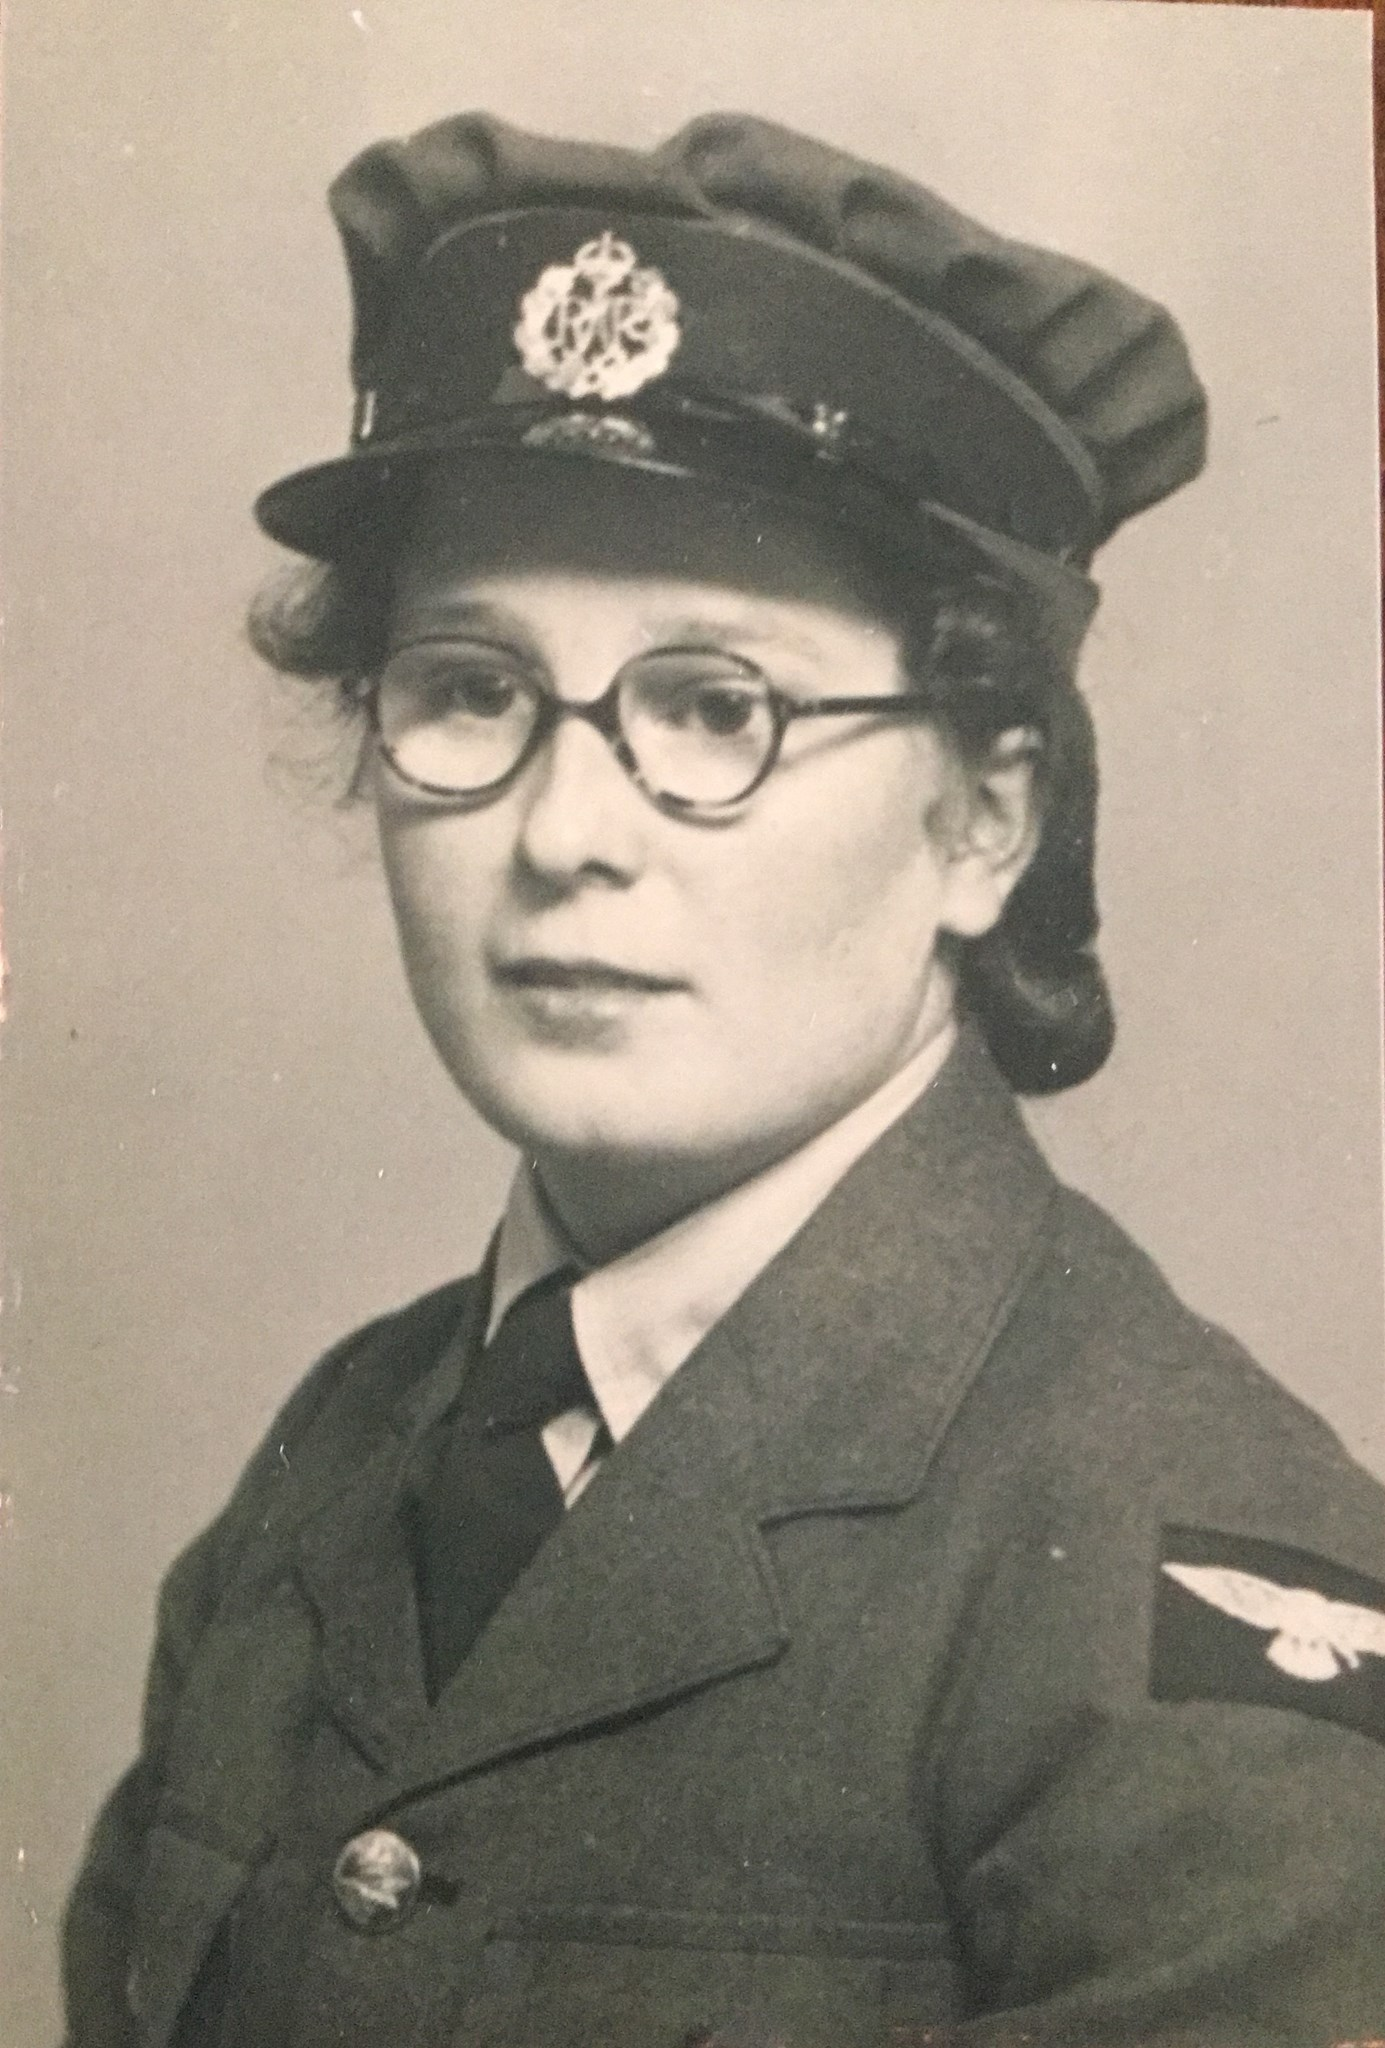 Joan joined the WRAFs in 1940